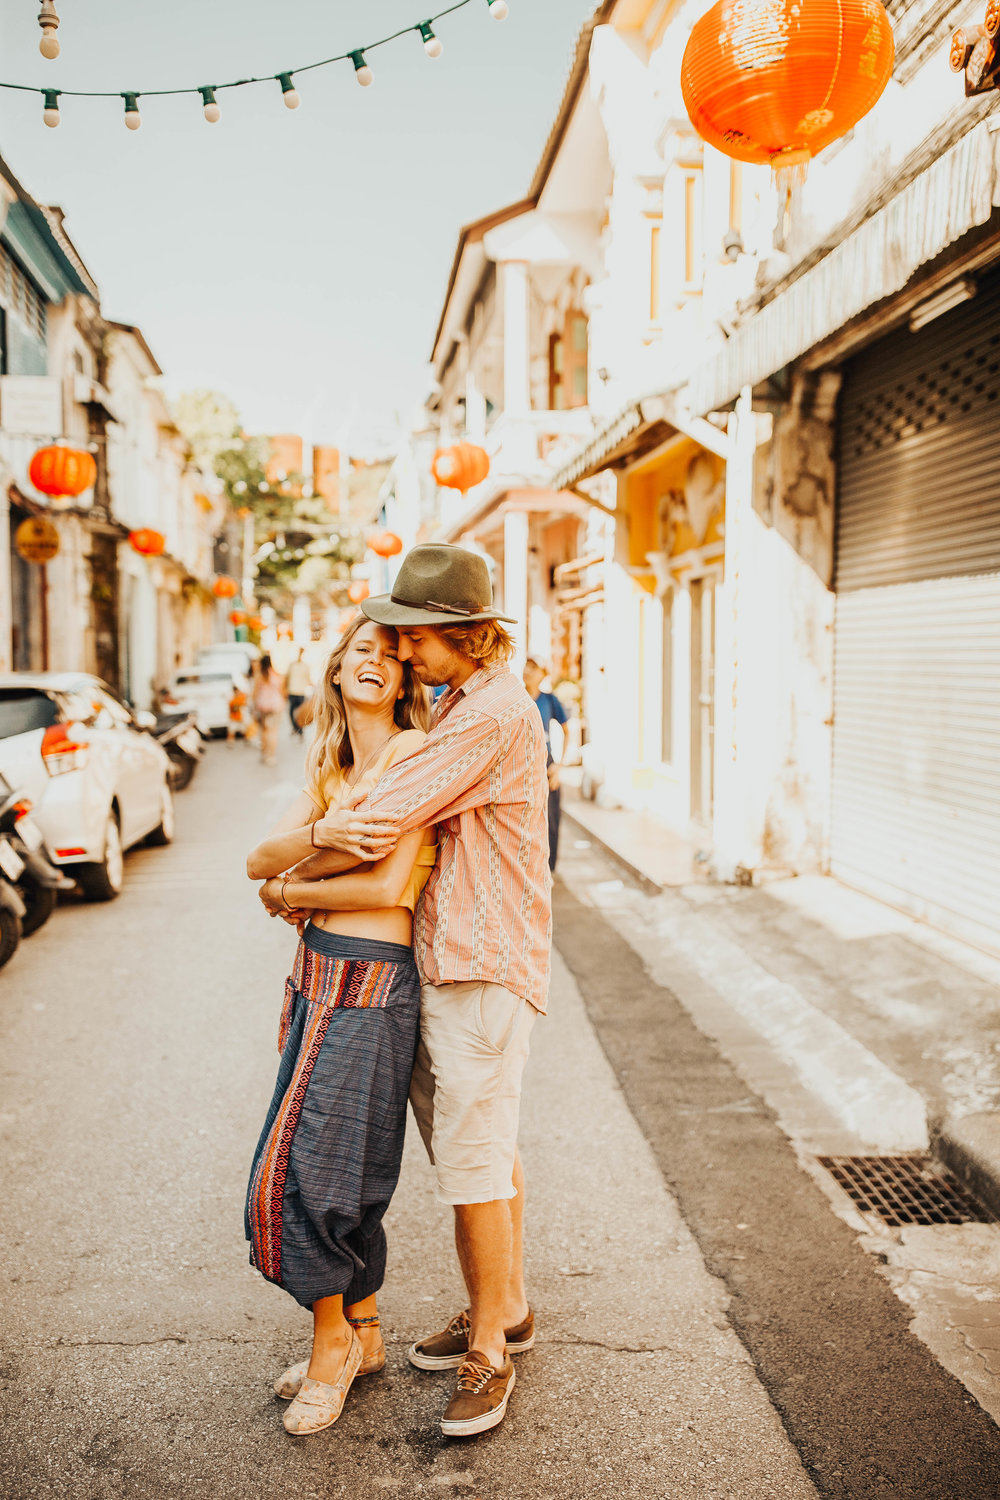 Julie and Will Old Town Phuket Couples Session 22.jpg